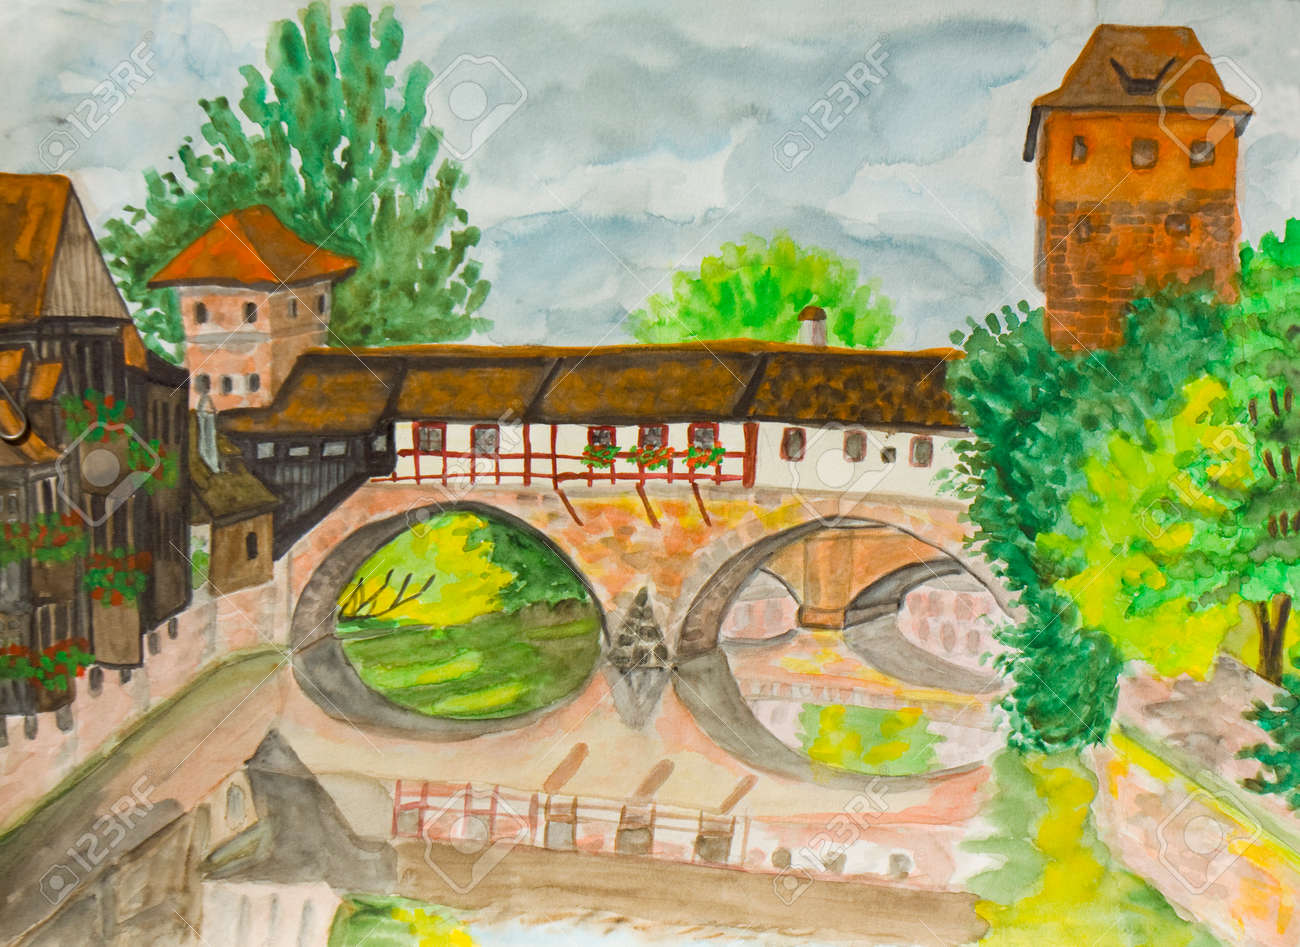 Nürenberg painted picture watercolours town nurenberg in germany